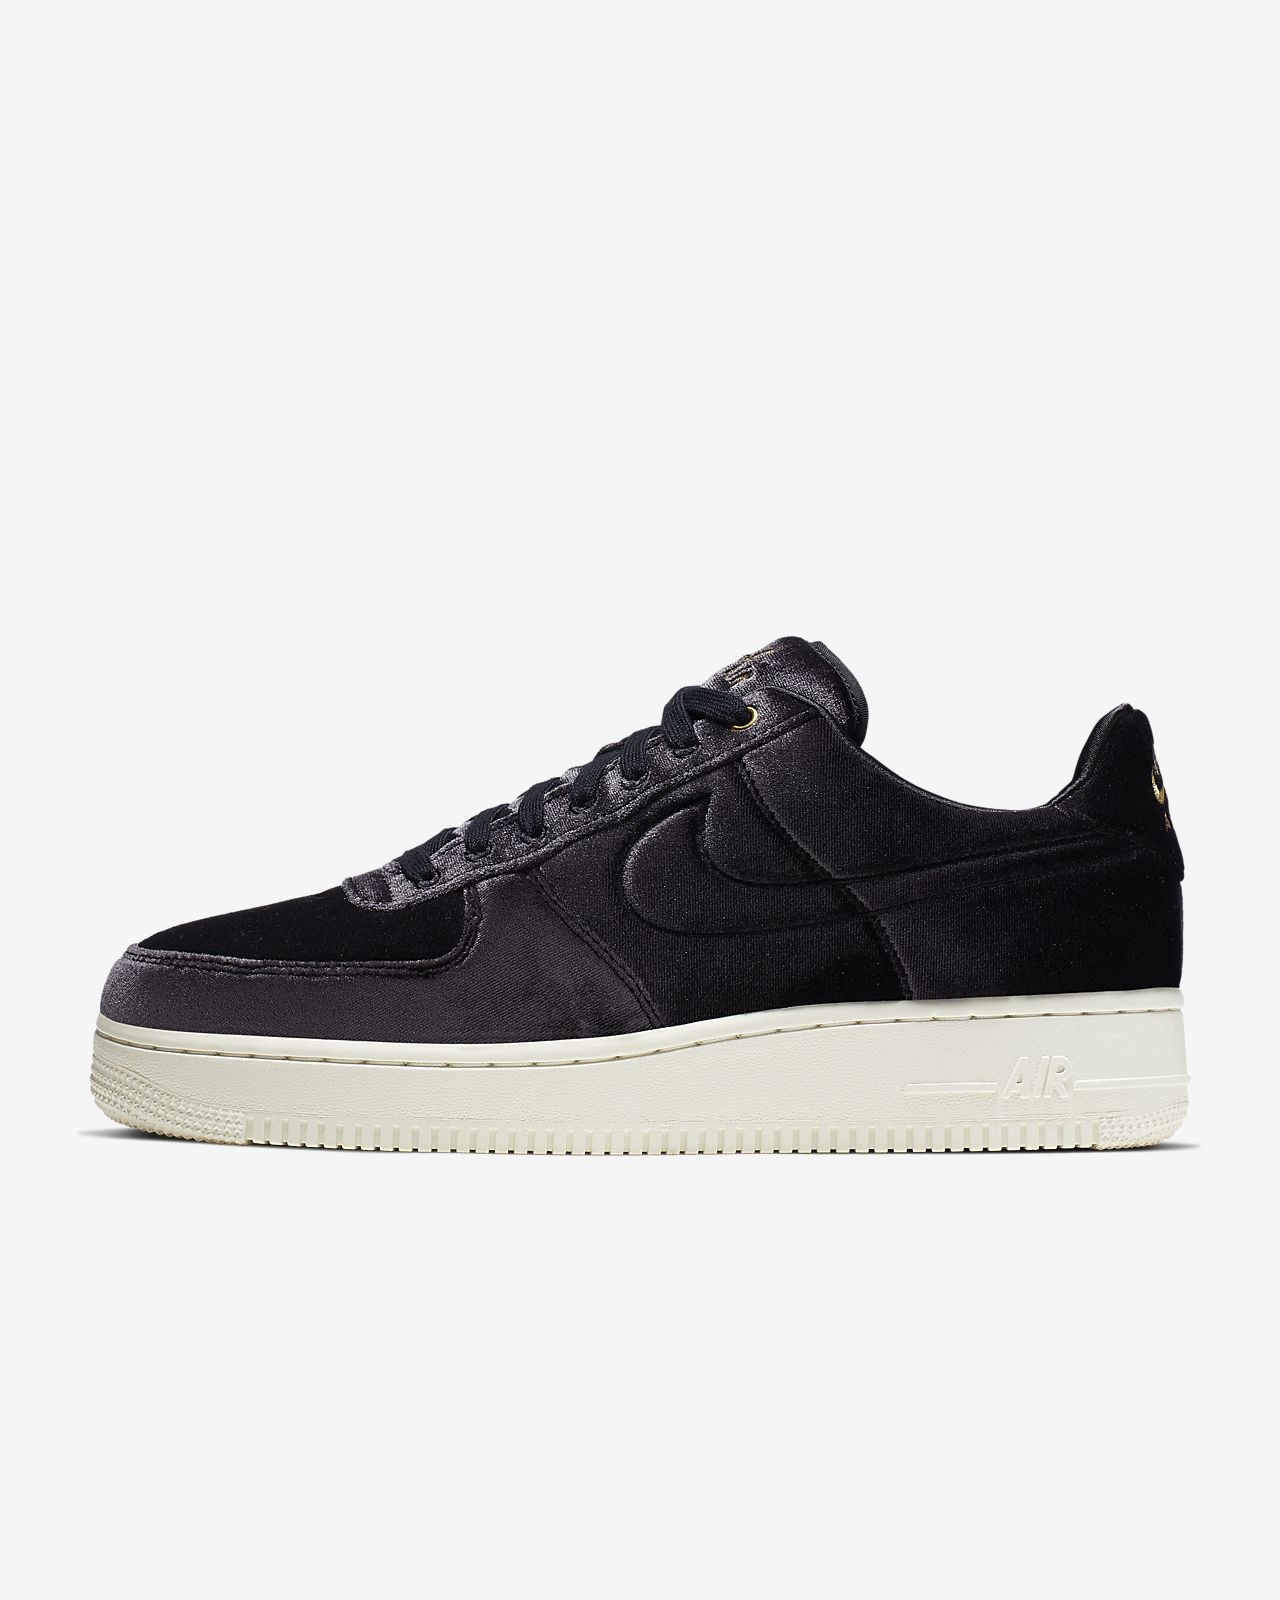 c163b370b3fd Nike Air Force 1 '07 Premium 3 Men's Shoe. Nike.com